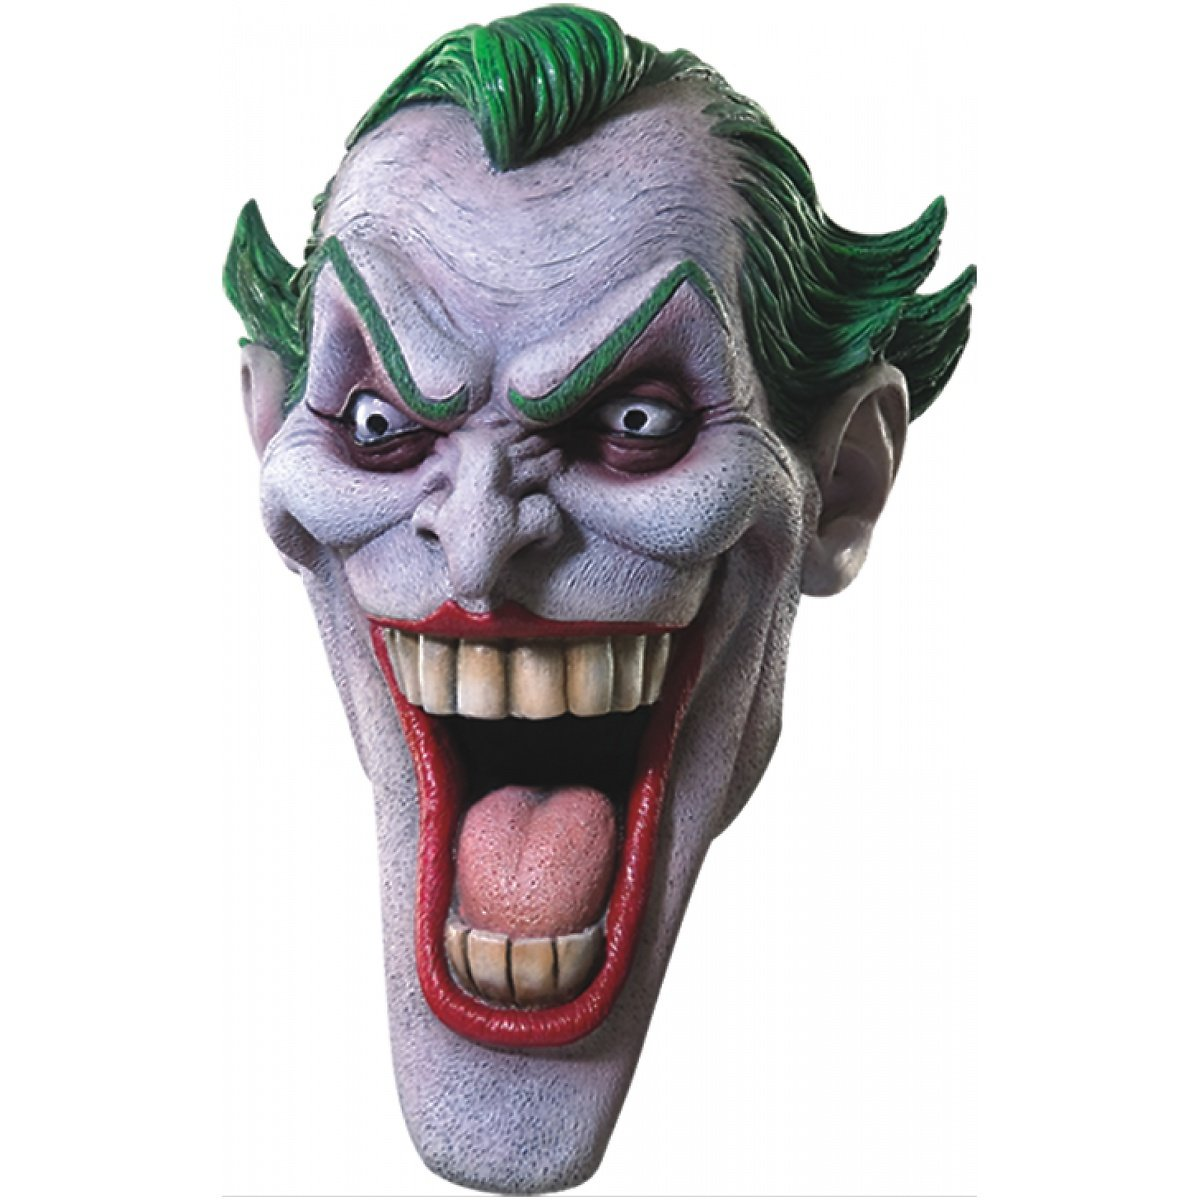 Amazon.com: Máscara de látex de el Joker Deluxe Costume ...